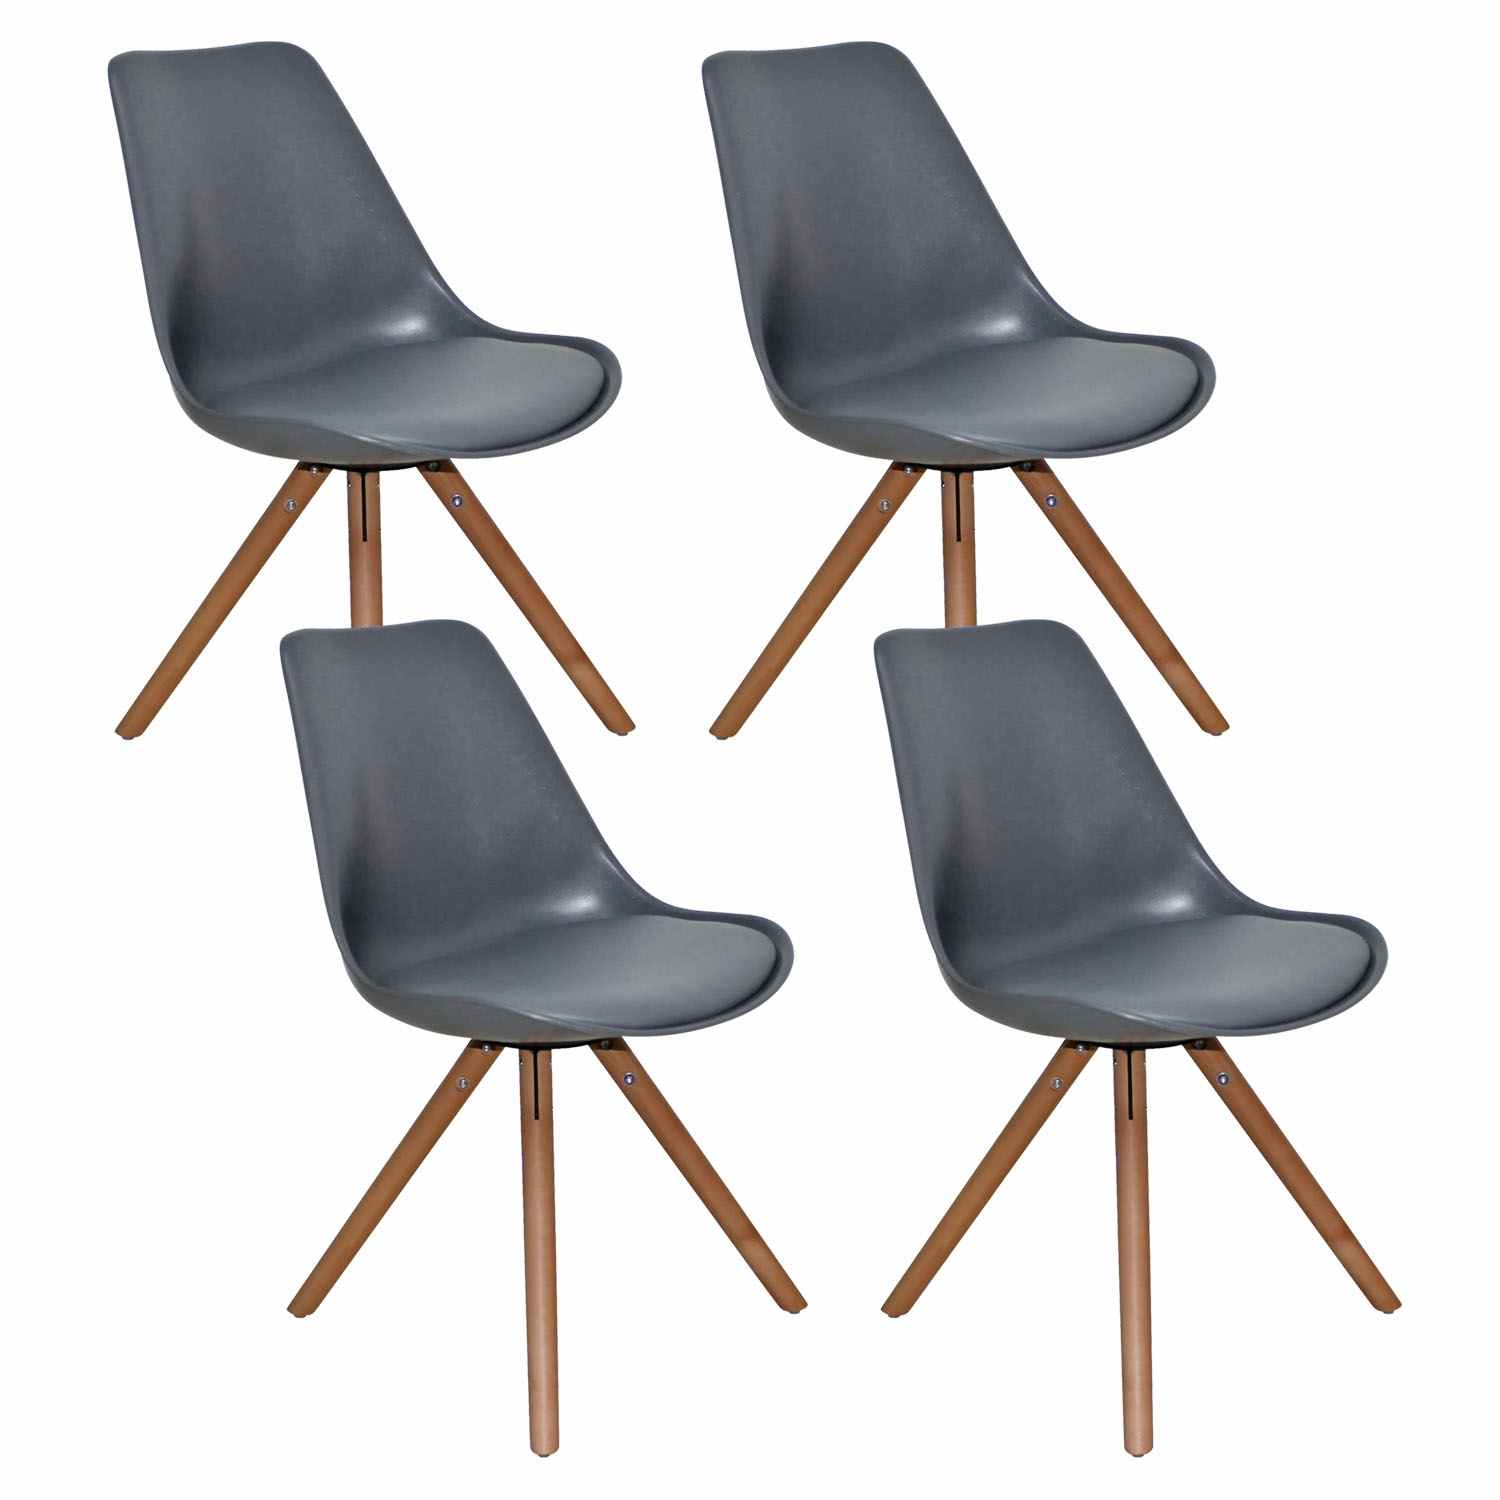 Deco in paris lot de 4 chaises design gris velta velta for Designer de chaise celebre